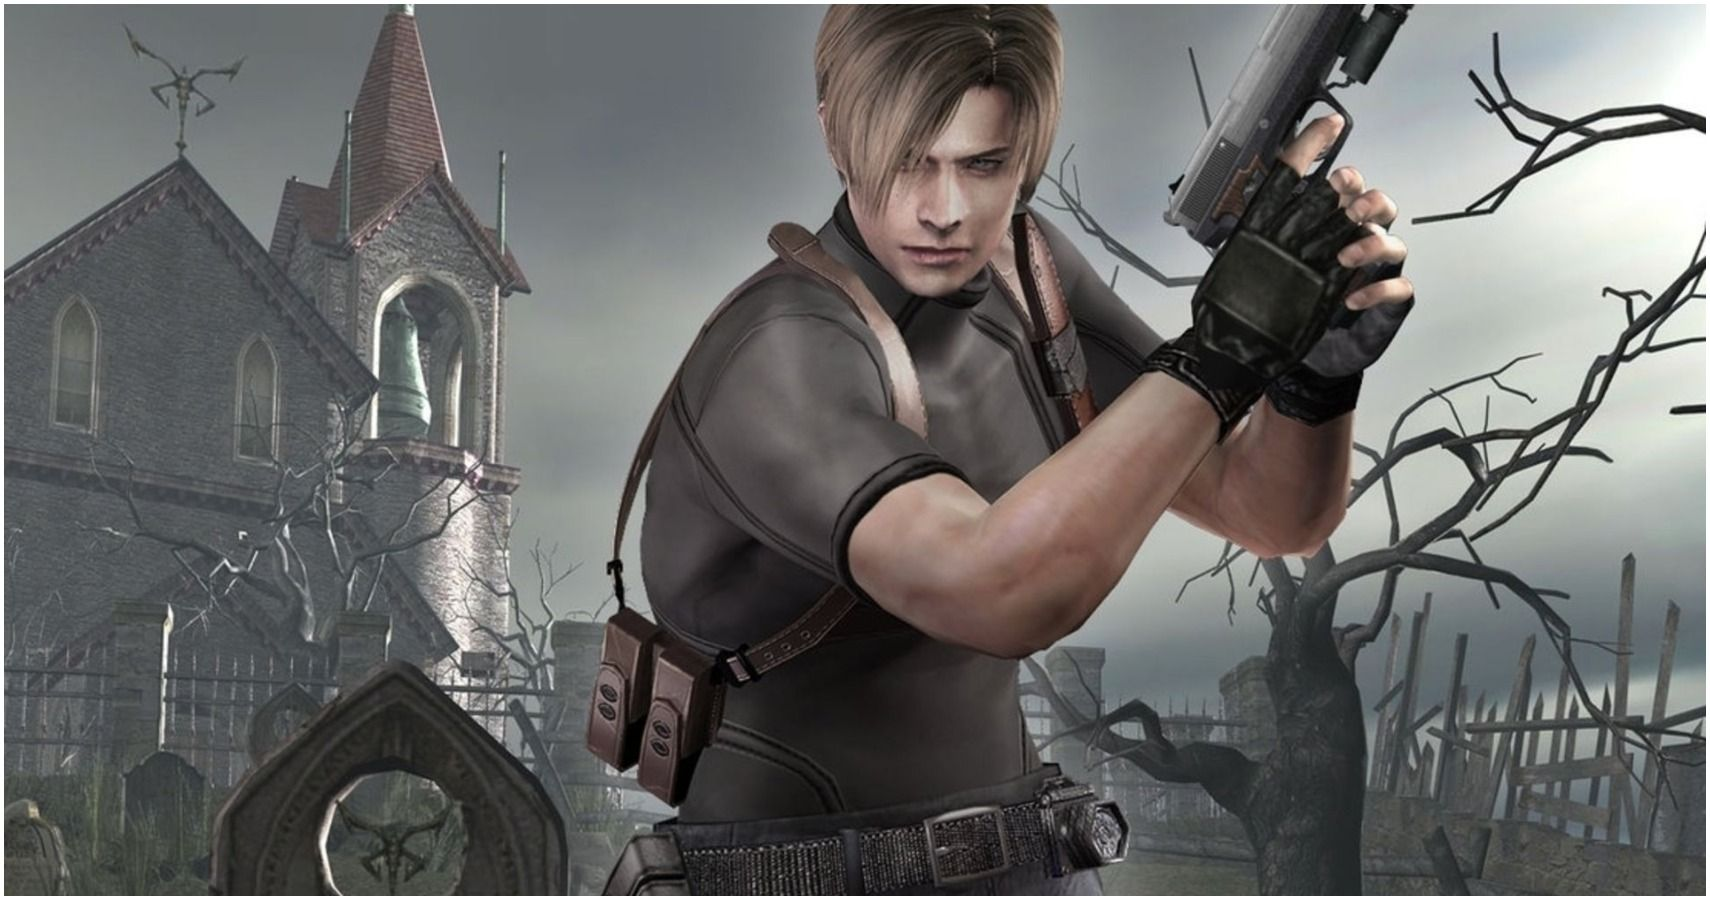 5 Things We Want To See In A Resident Evil 4 Remake For Ps5 5